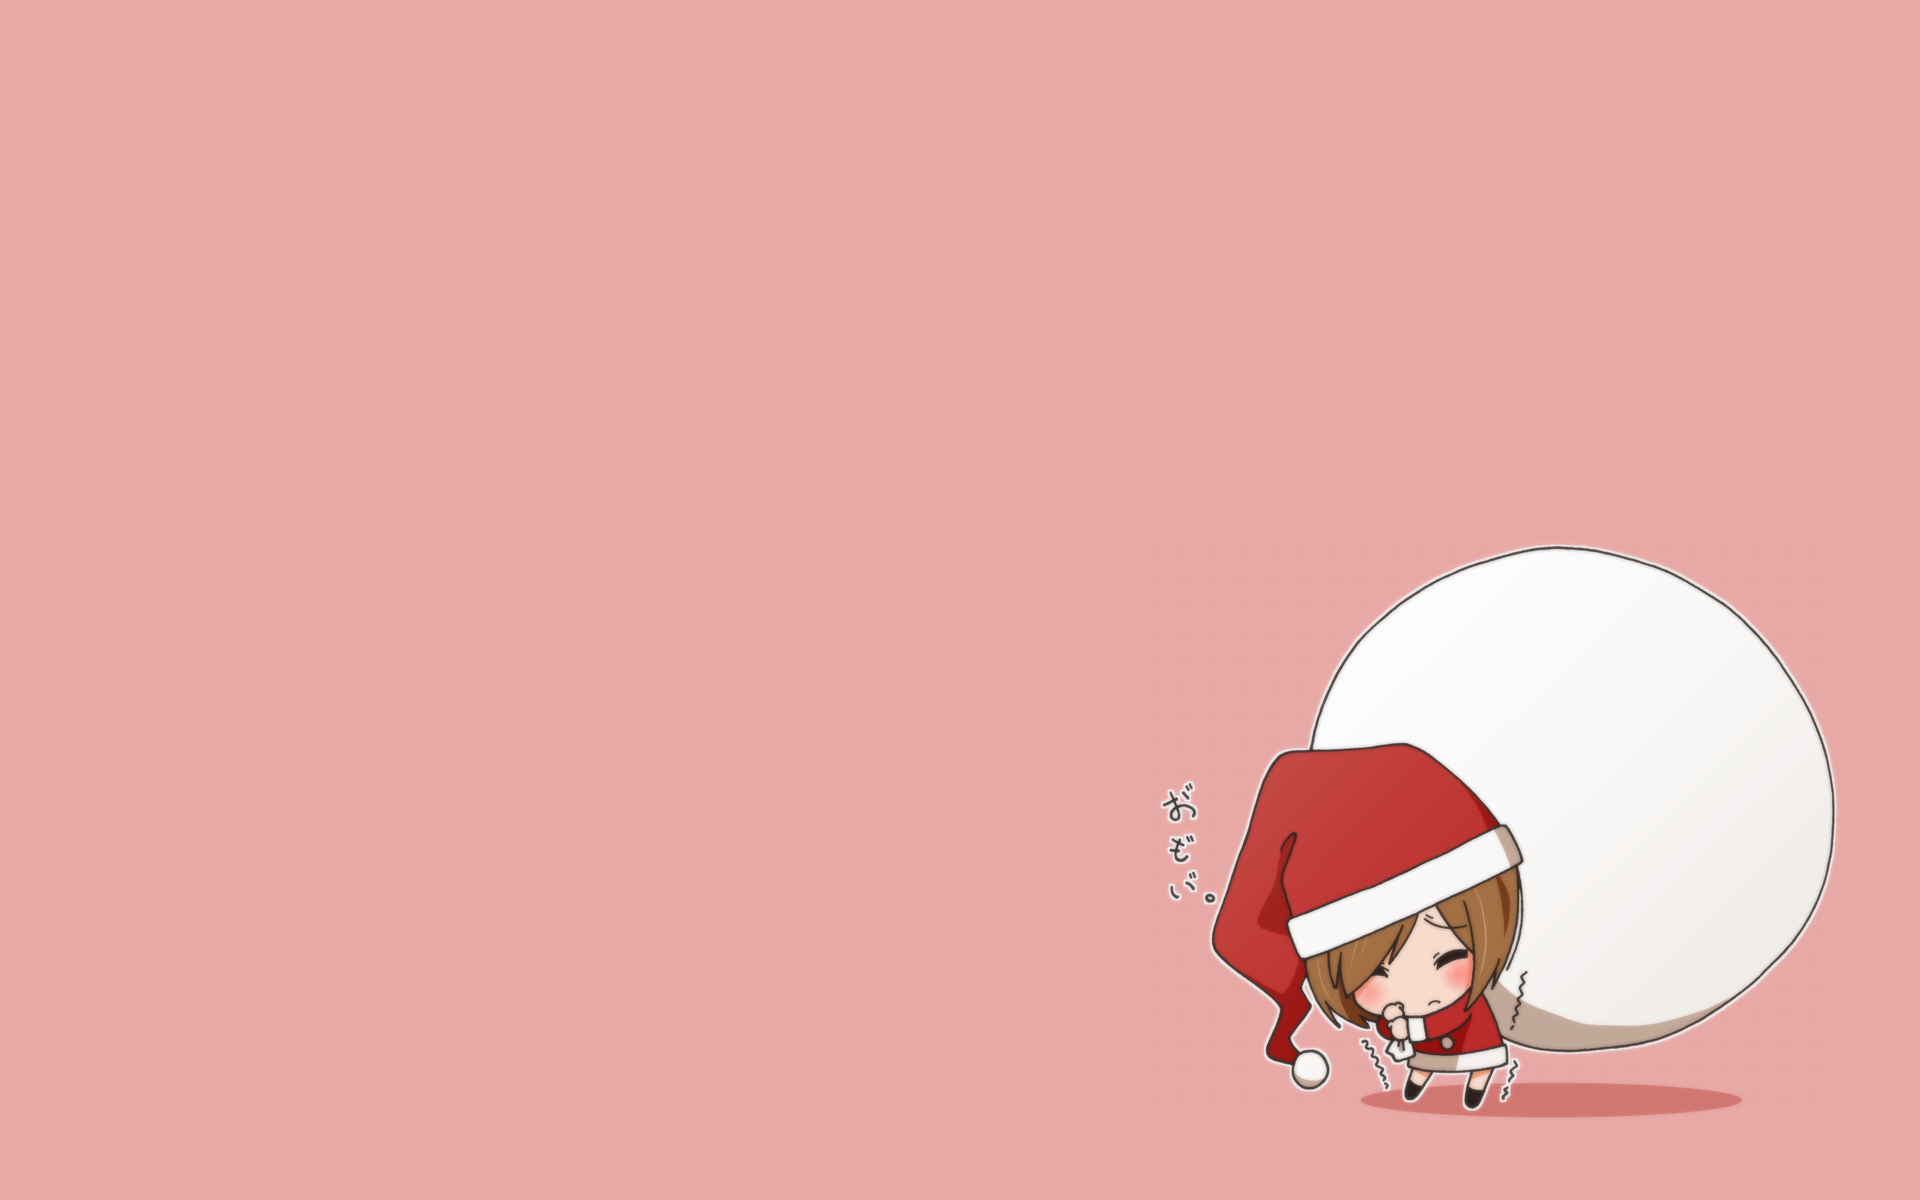 Chibi Backgrounds - Wallpaper Cave